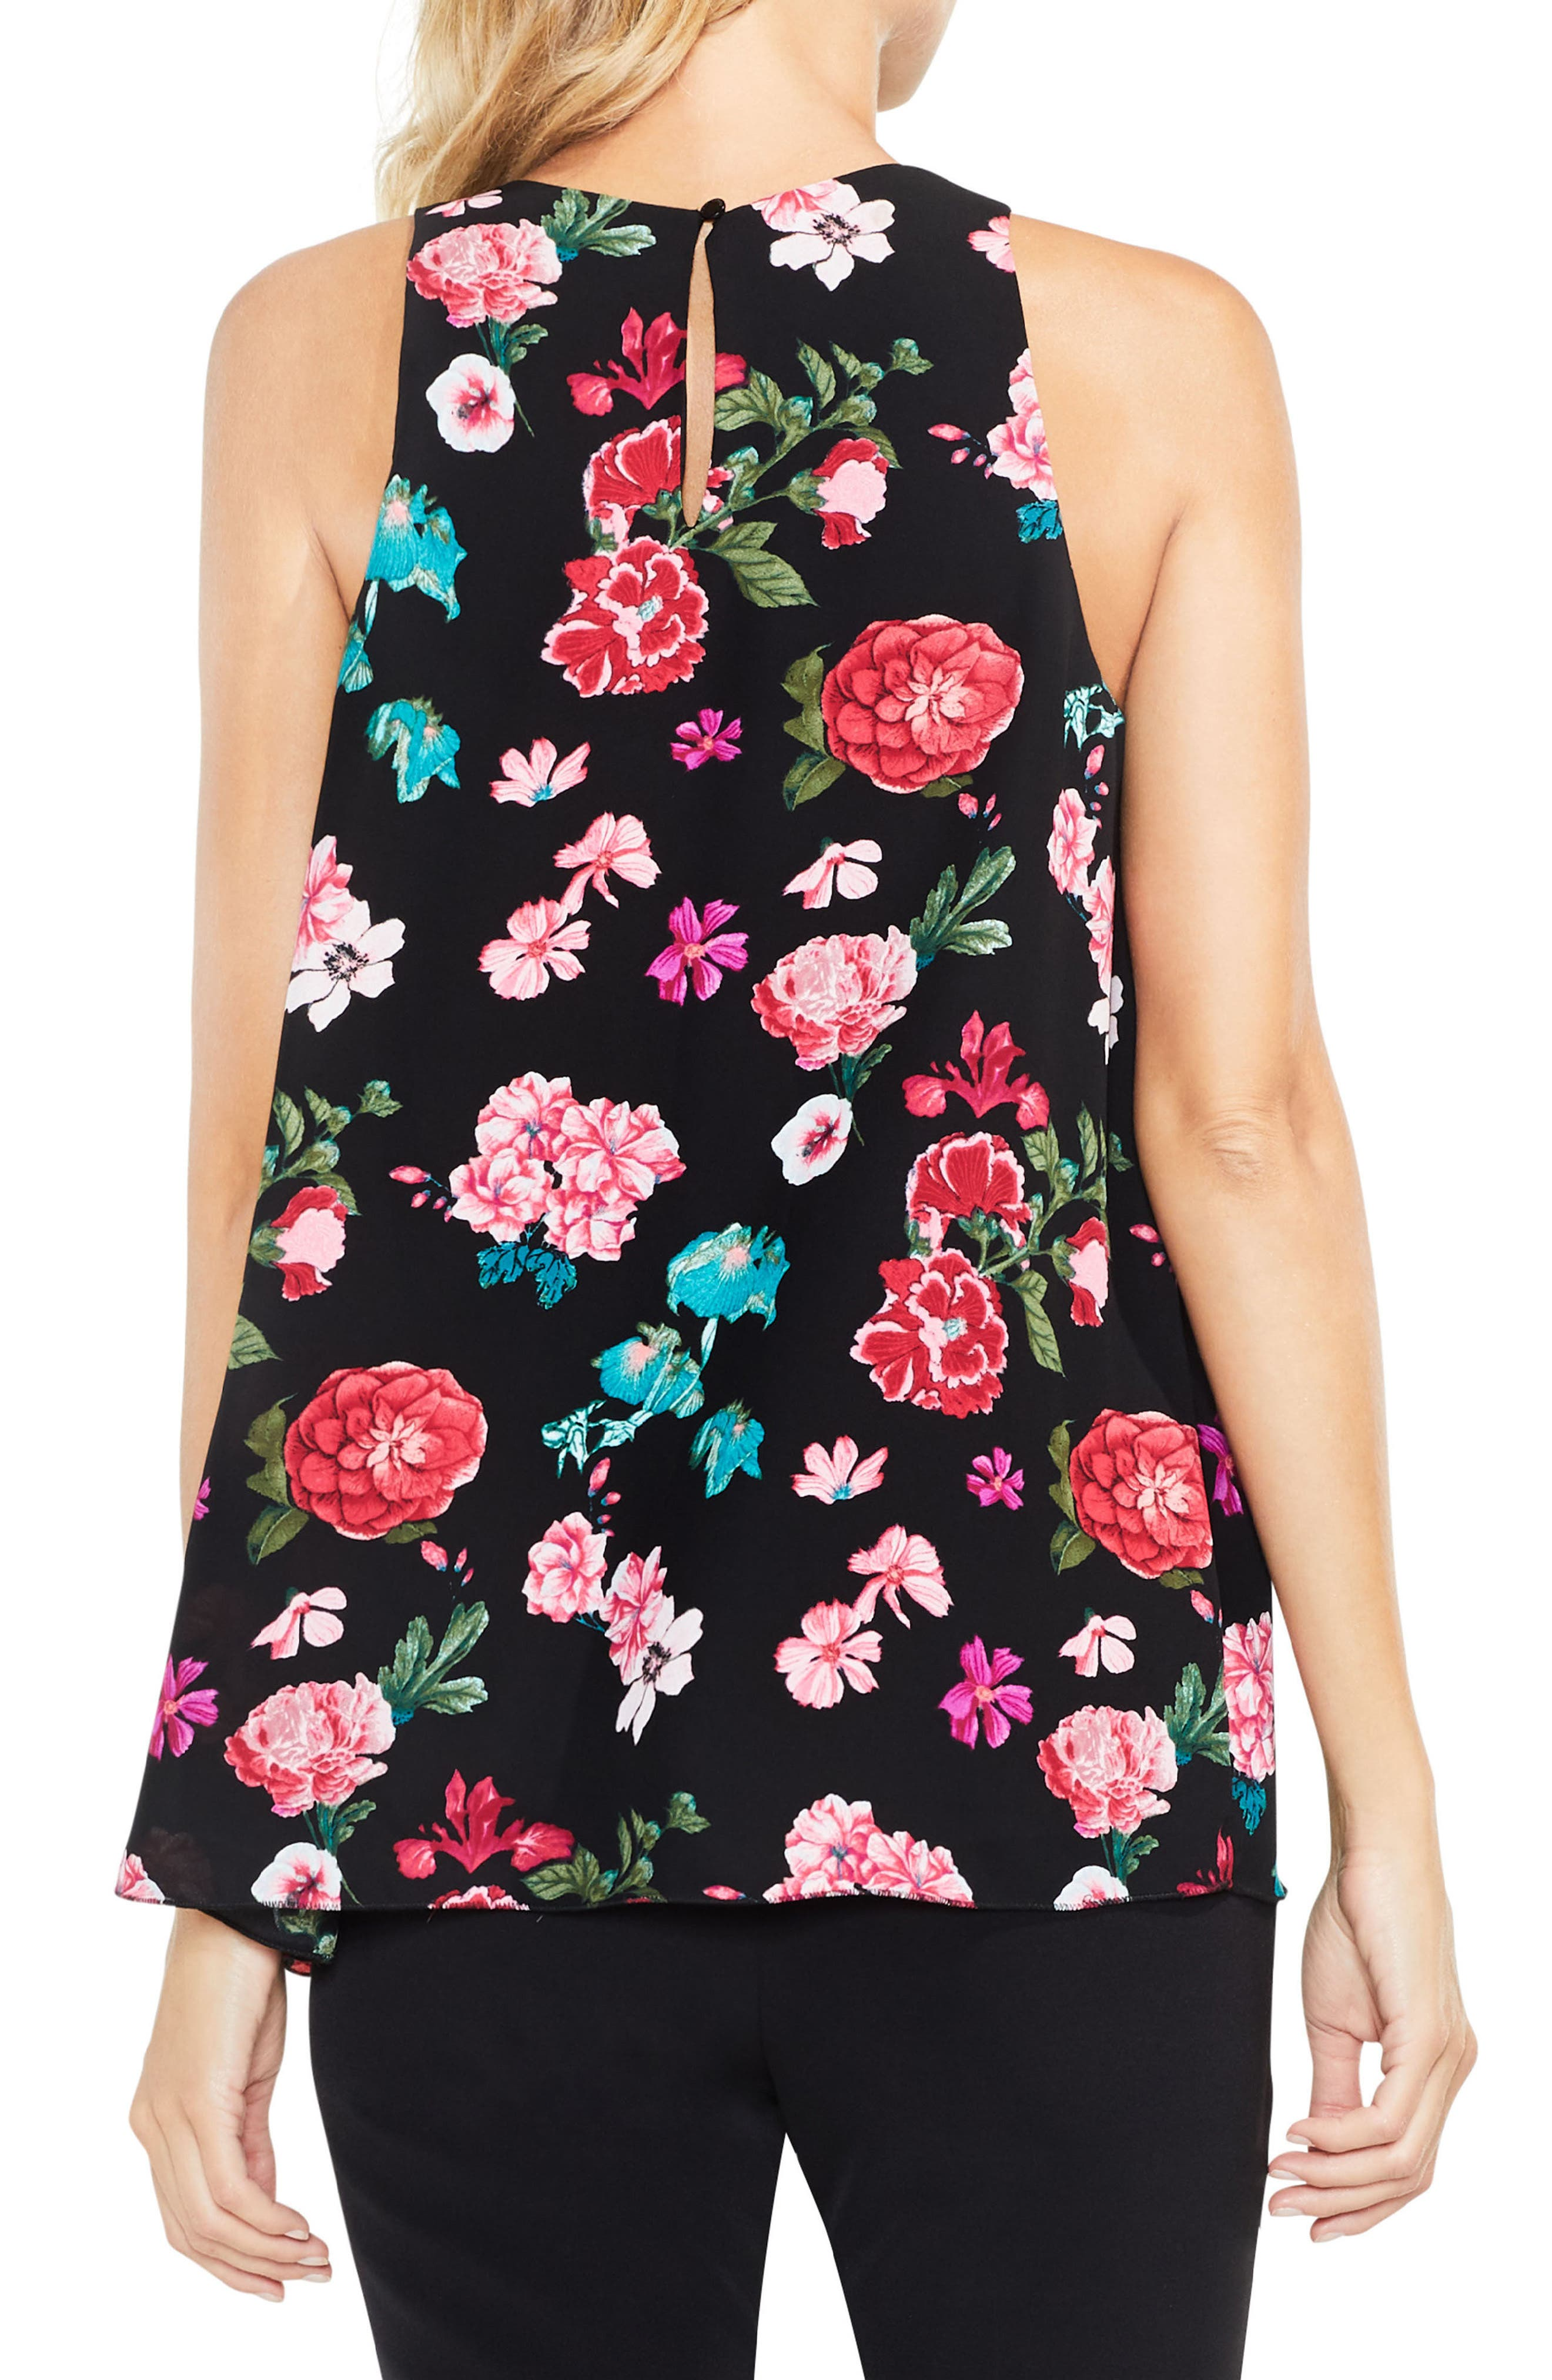 Floral Heirlooms Sleeveless Blouse,                             Alternate thumbnail 2, color,                             006